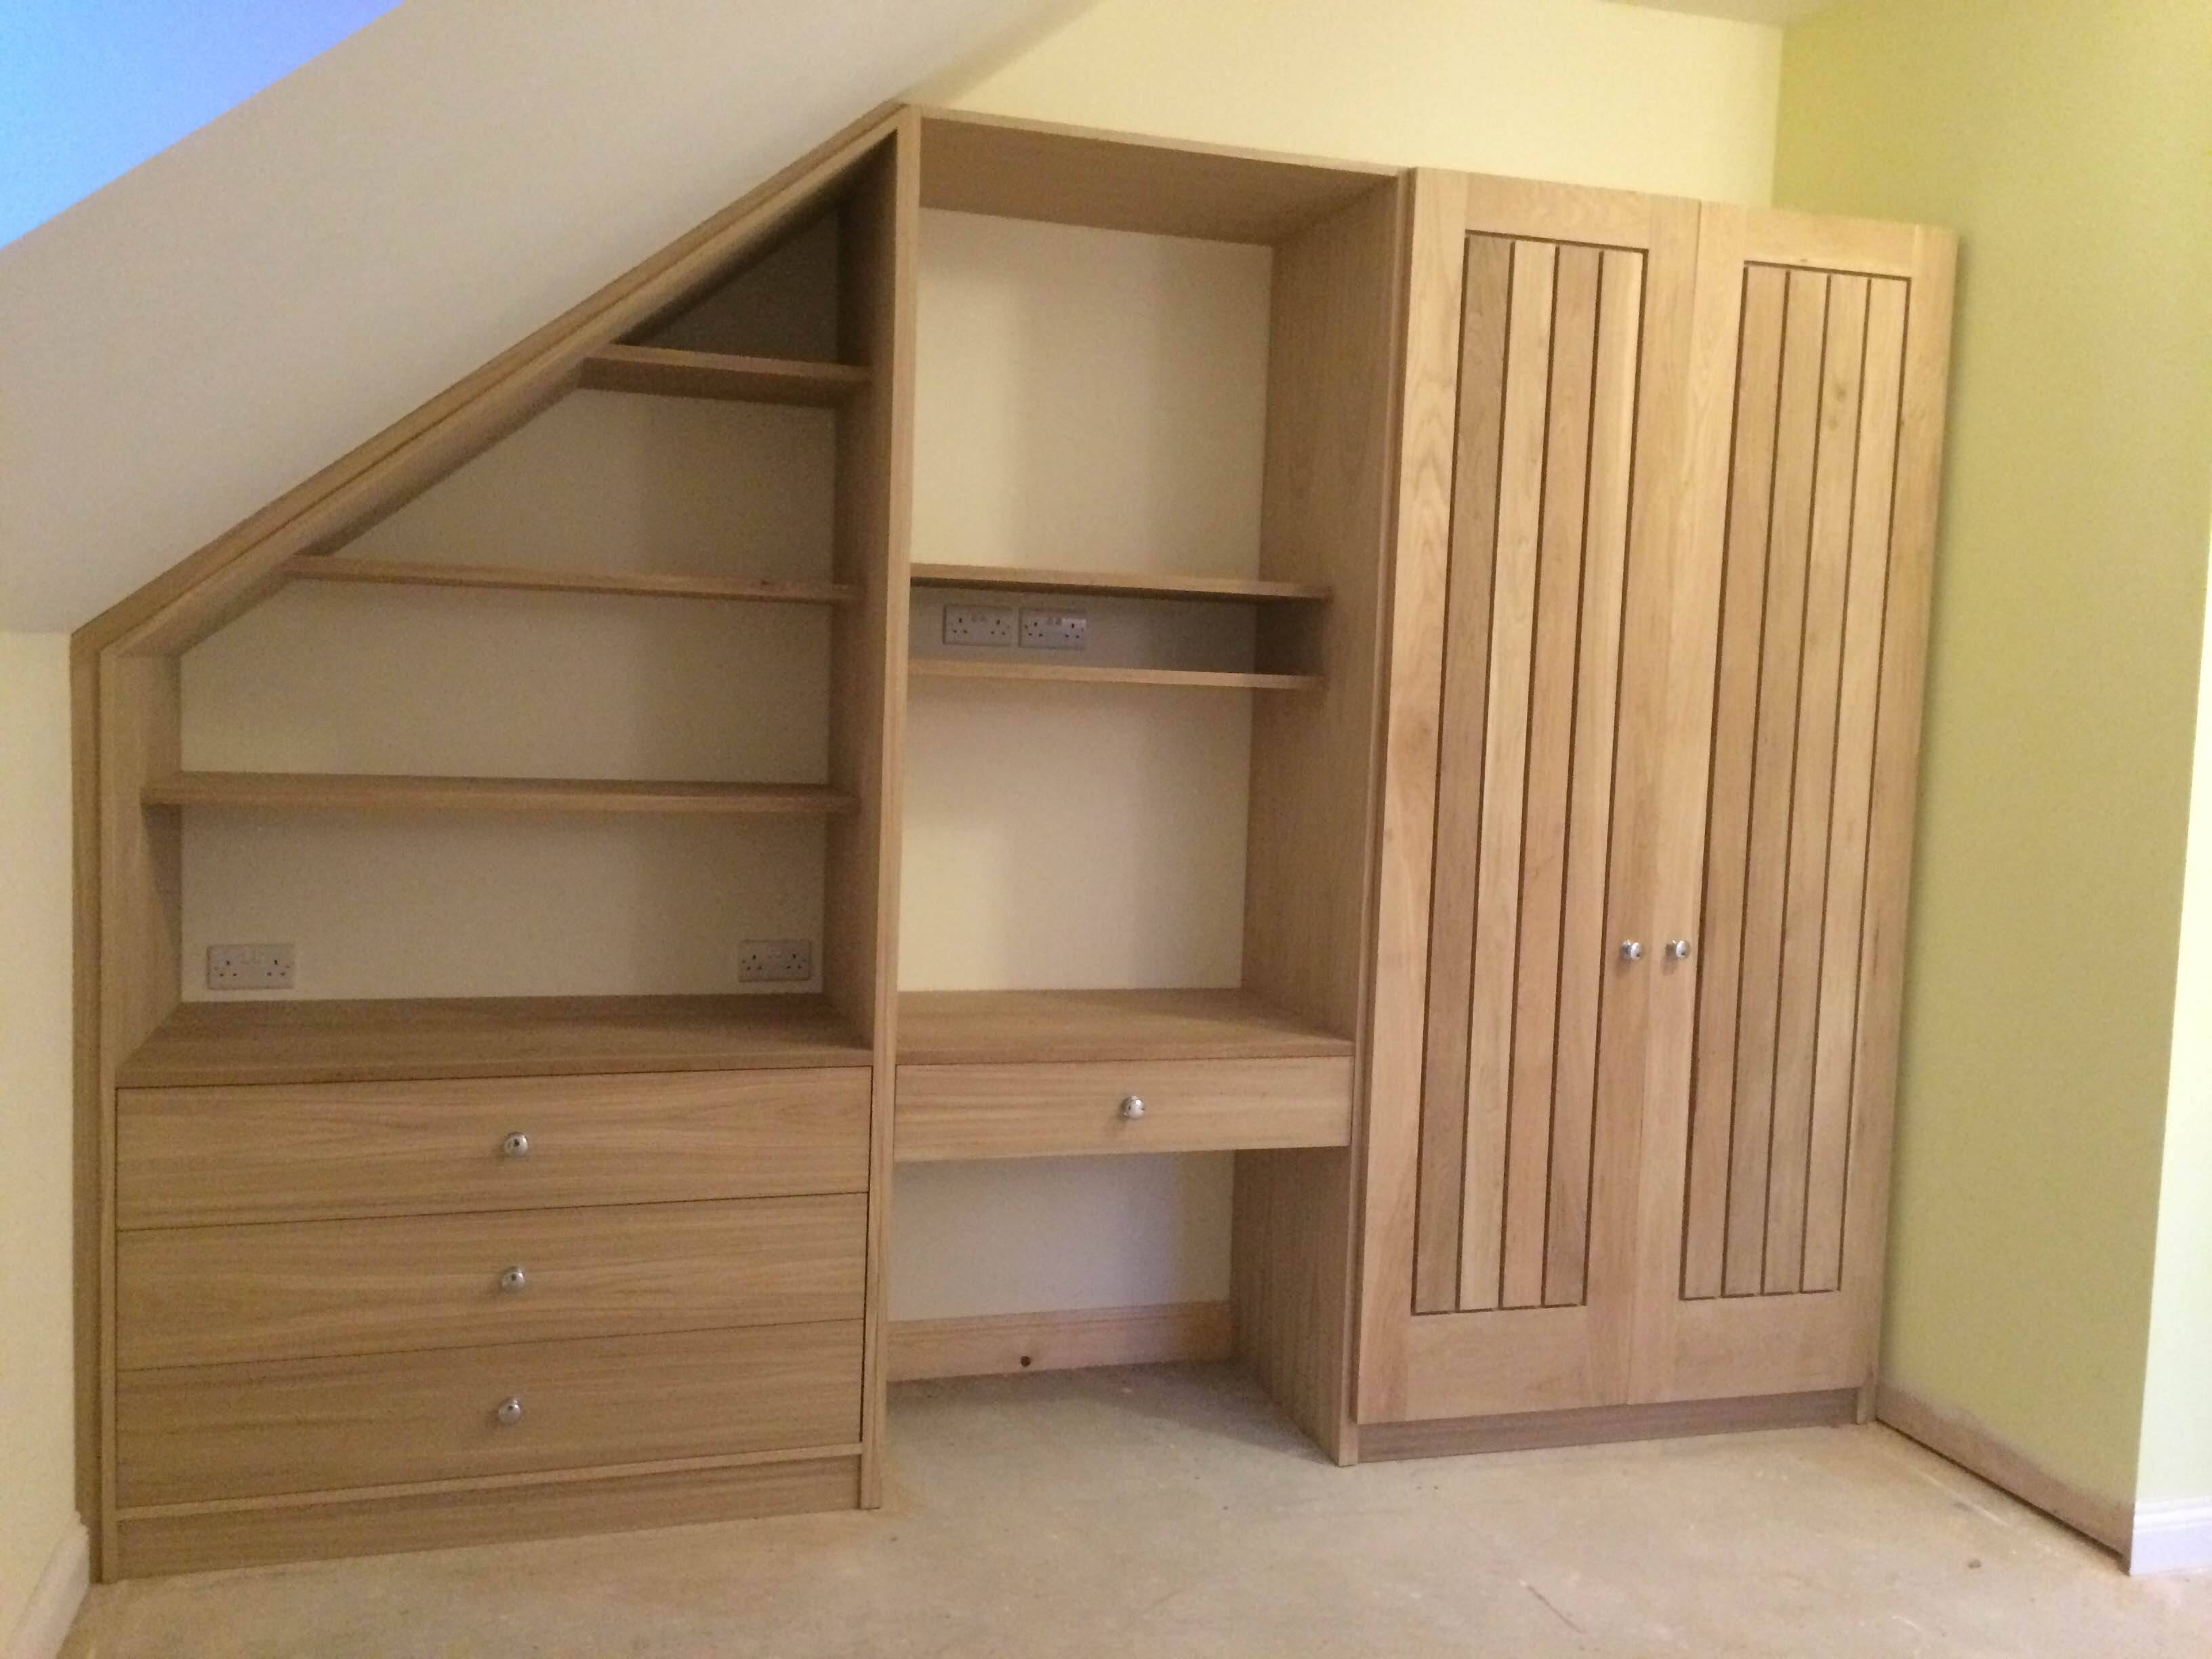 American White Oak Wardrobe | Carpentrycraig Ross regarding Oak And White Wardrobes (Image 1 of 15)